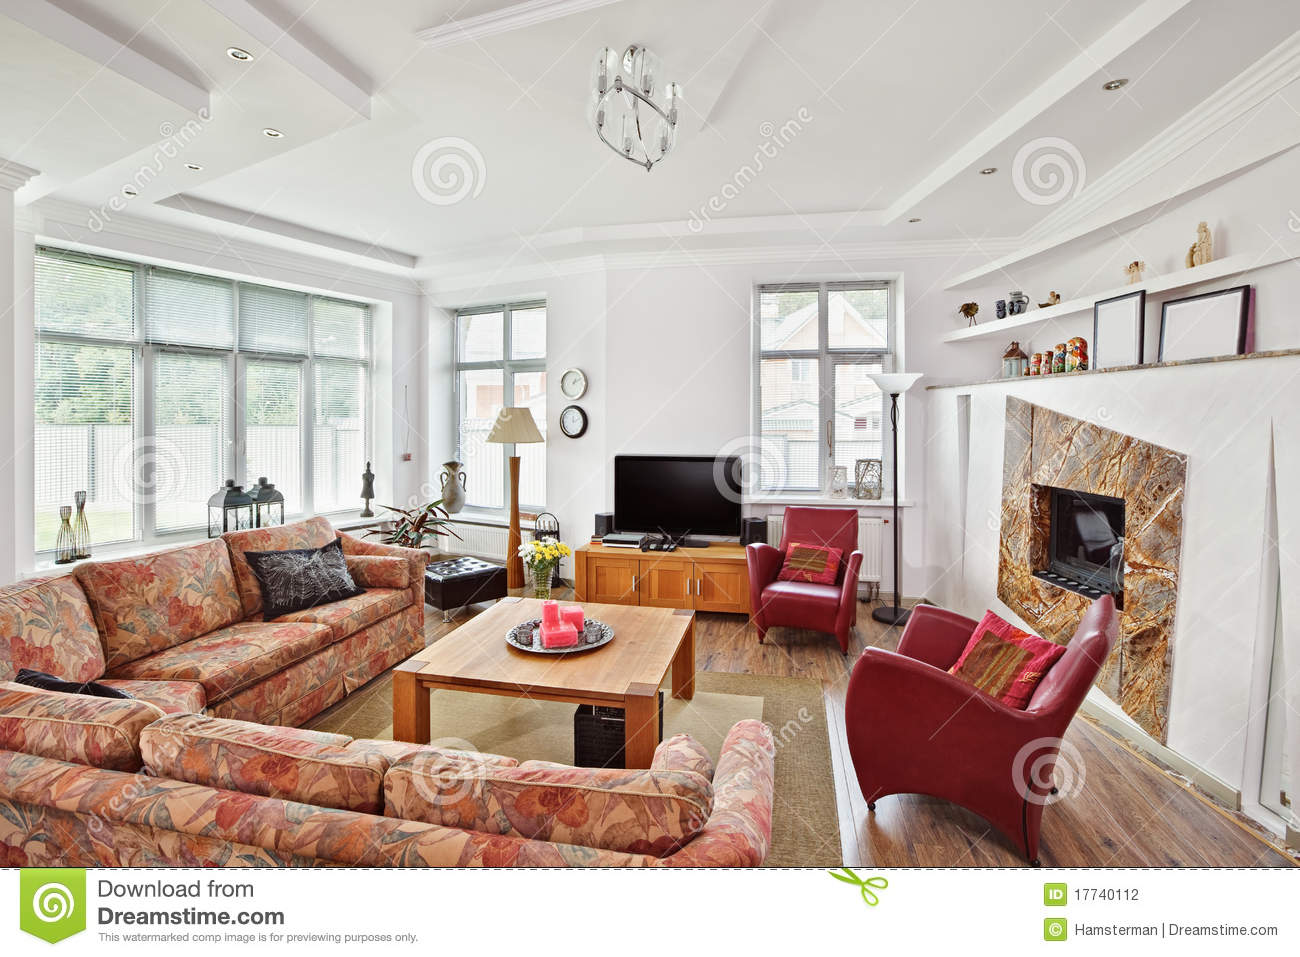 Modern art deco style drawing room interior stock photo for Interieur salon moderne